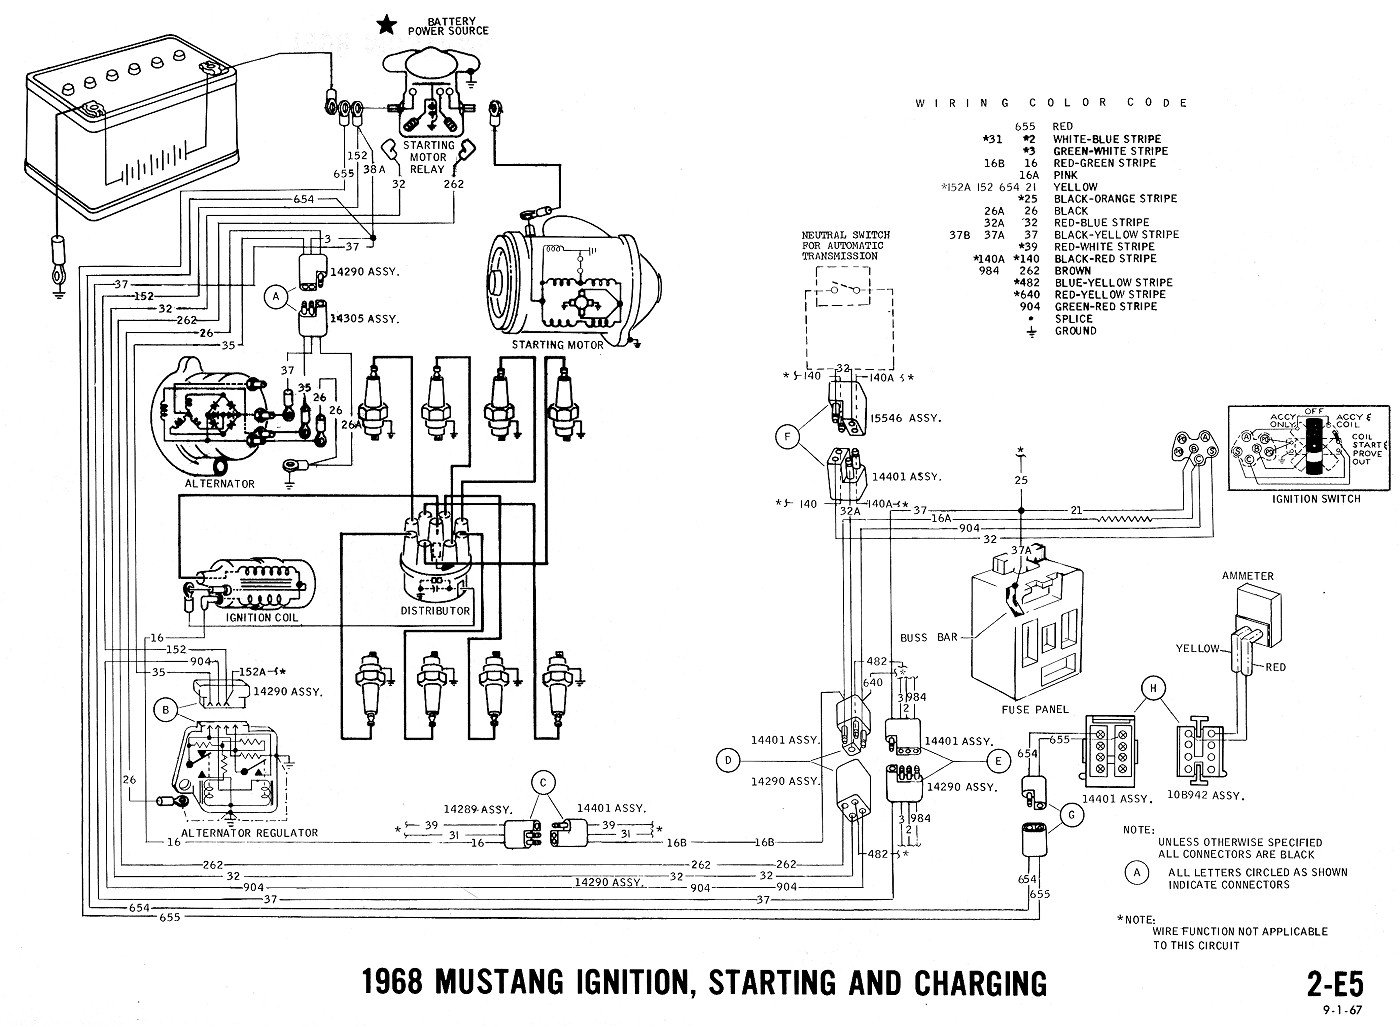 1968 mustang tach wiring 68 alternator wiring issue - ford mustang forum 1968 mustang alternator wiring diagram